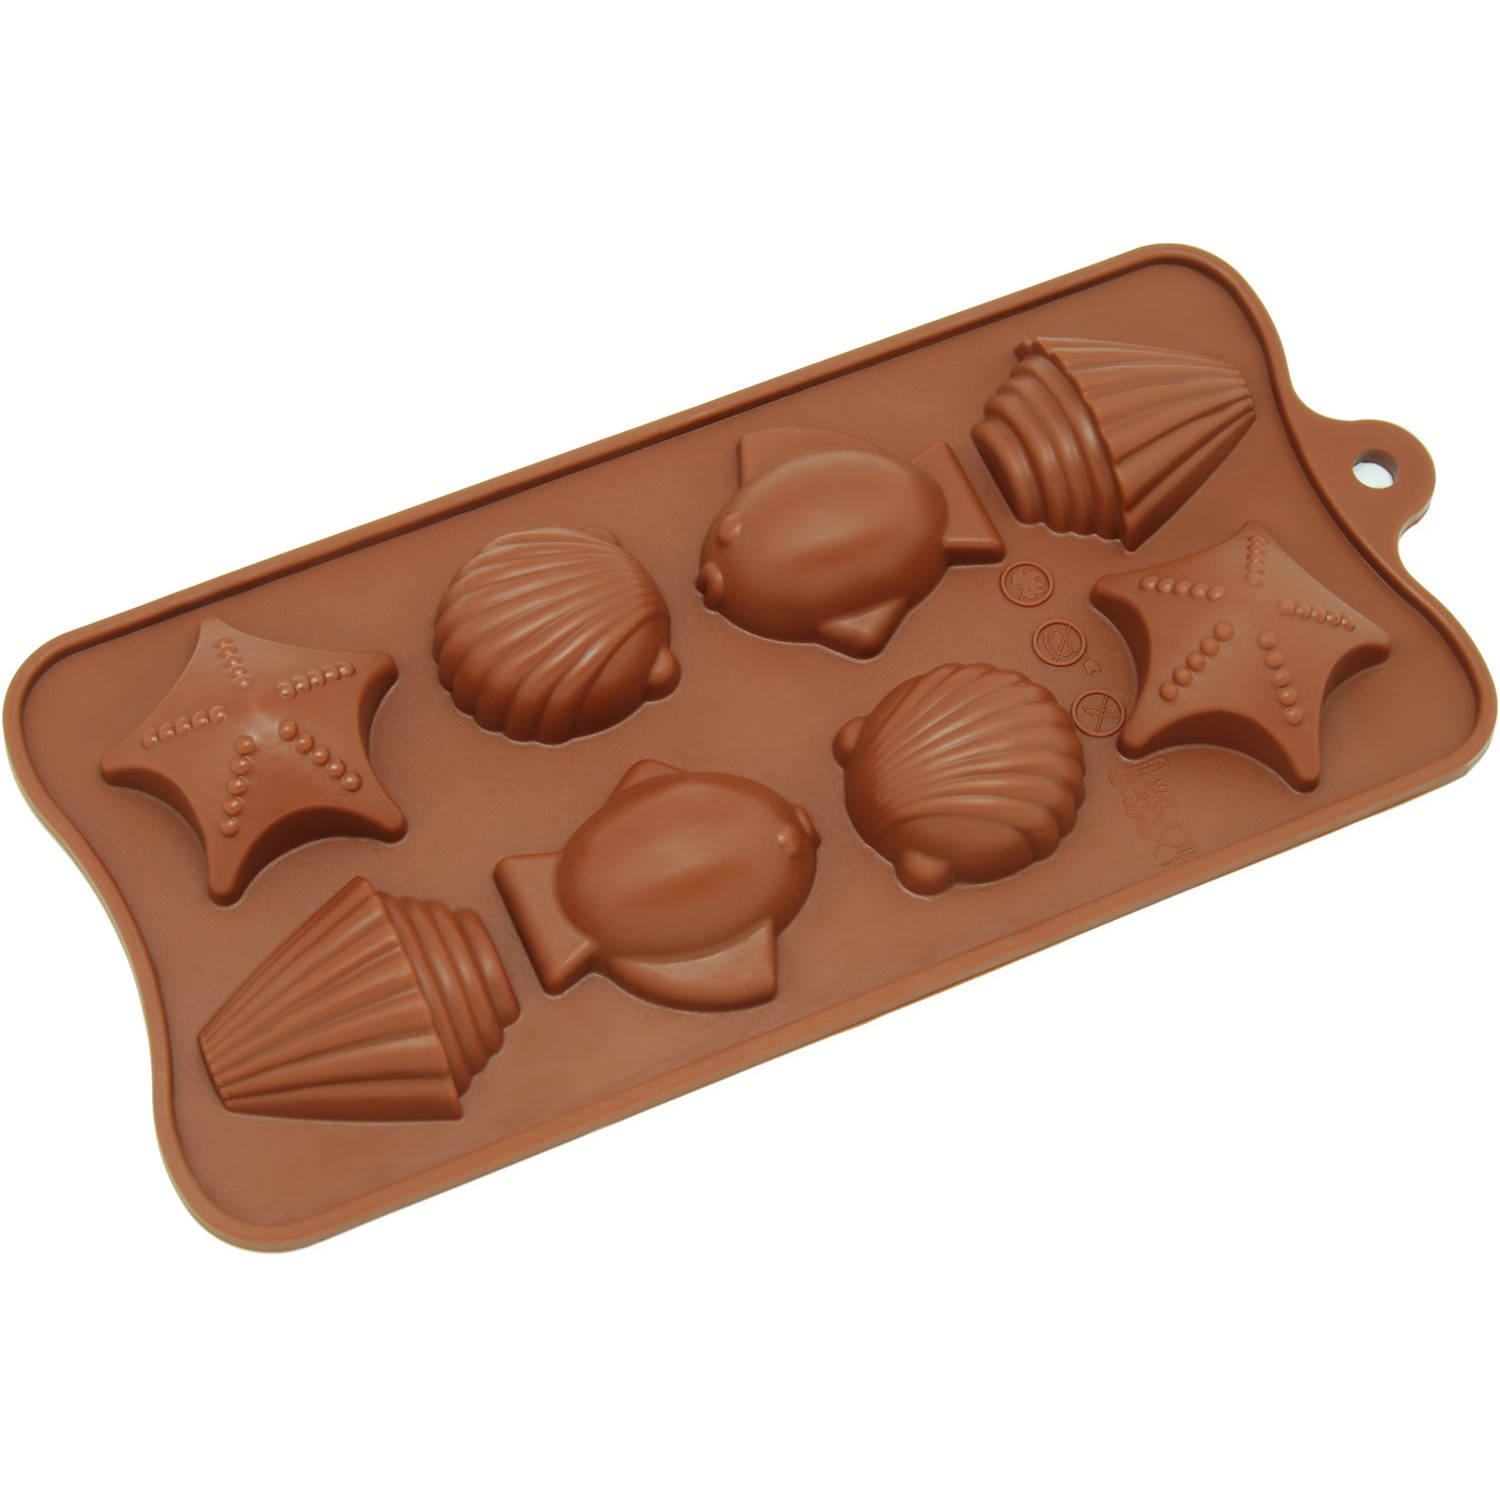 Freshware 8 Cavity Seashell Fish and Seastar Silicone Mold for